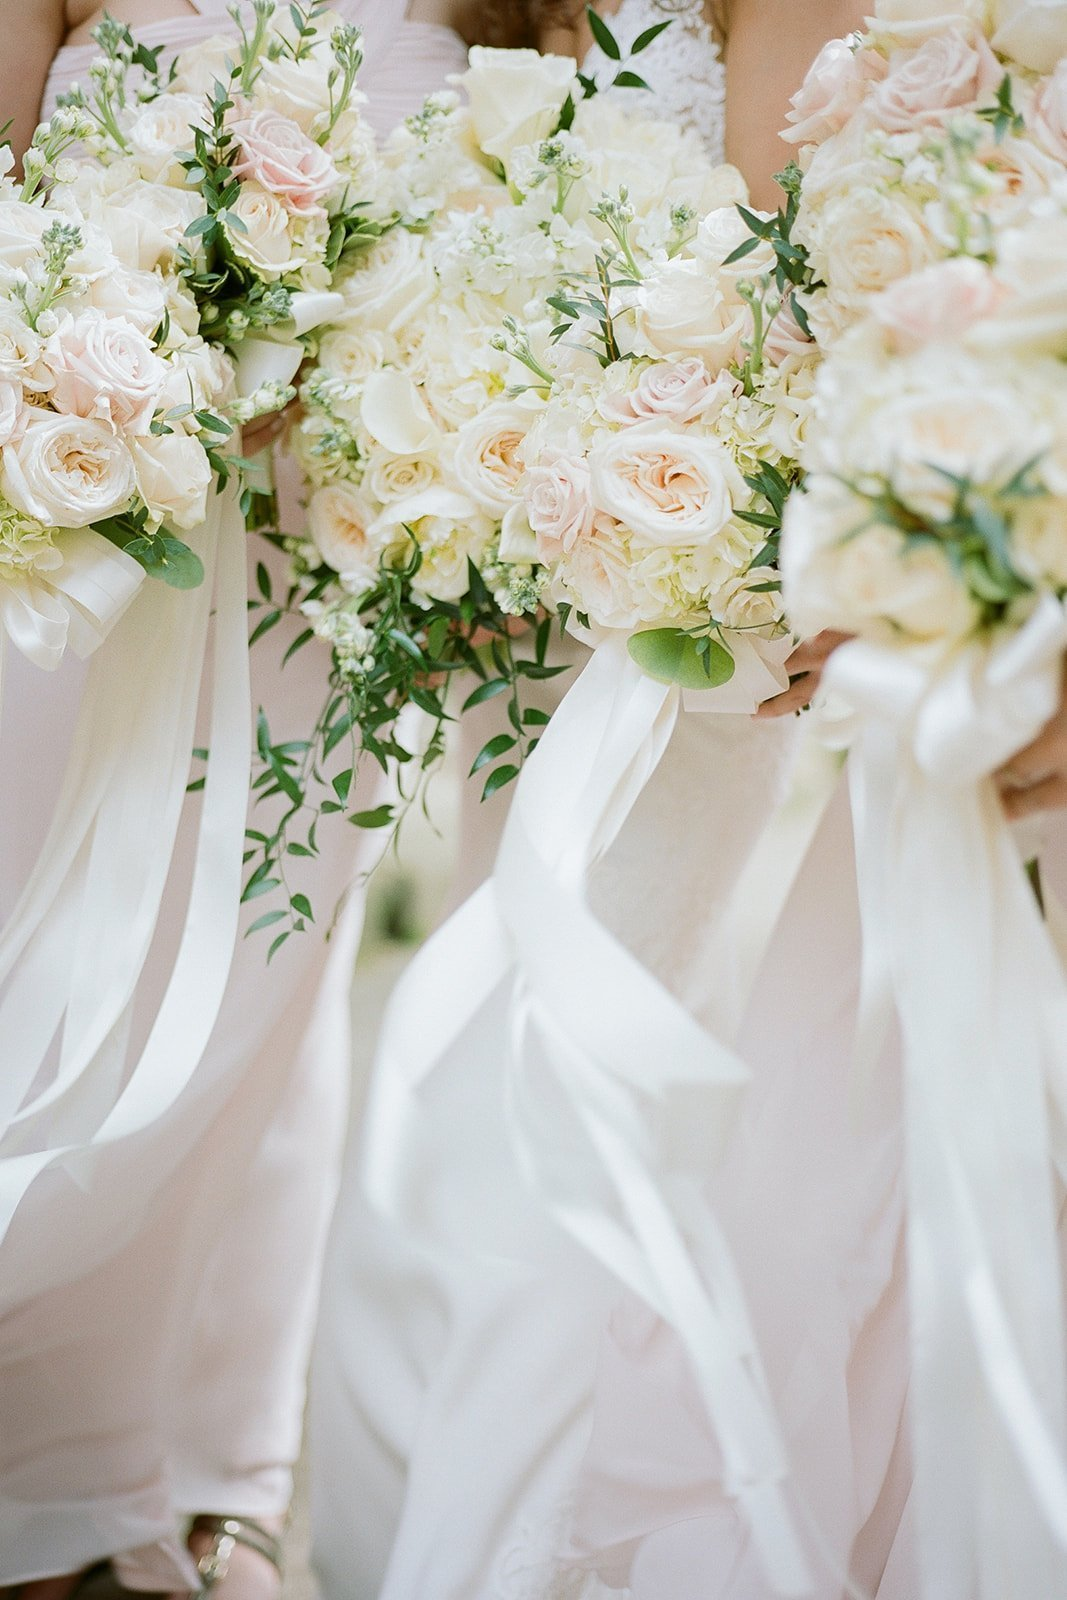 bridesmaids bouquets and ribbon blowing in the wind